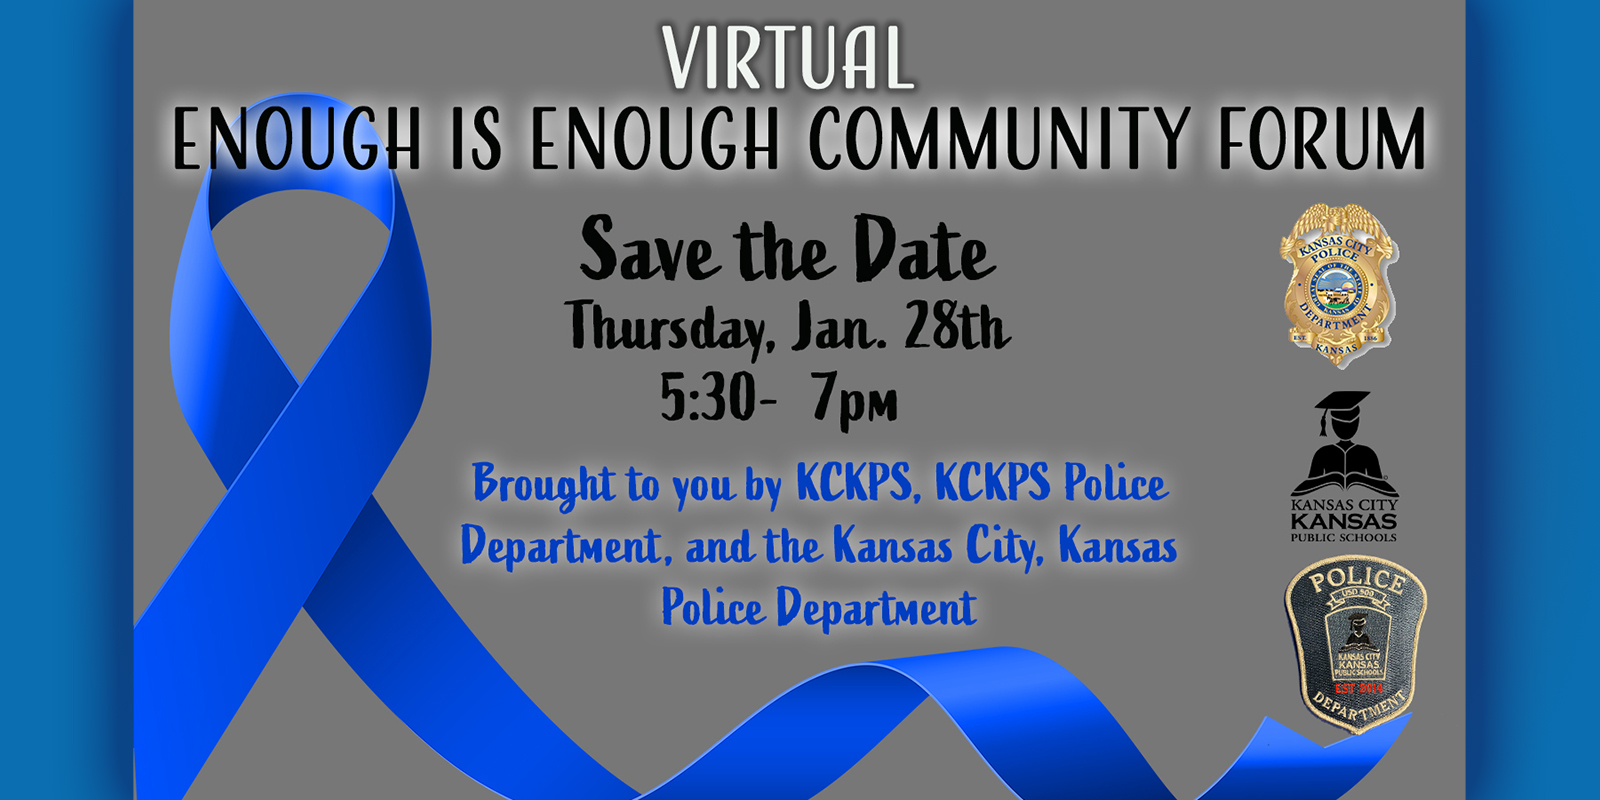 Enough is Enough Virtual Community Forum on January 28